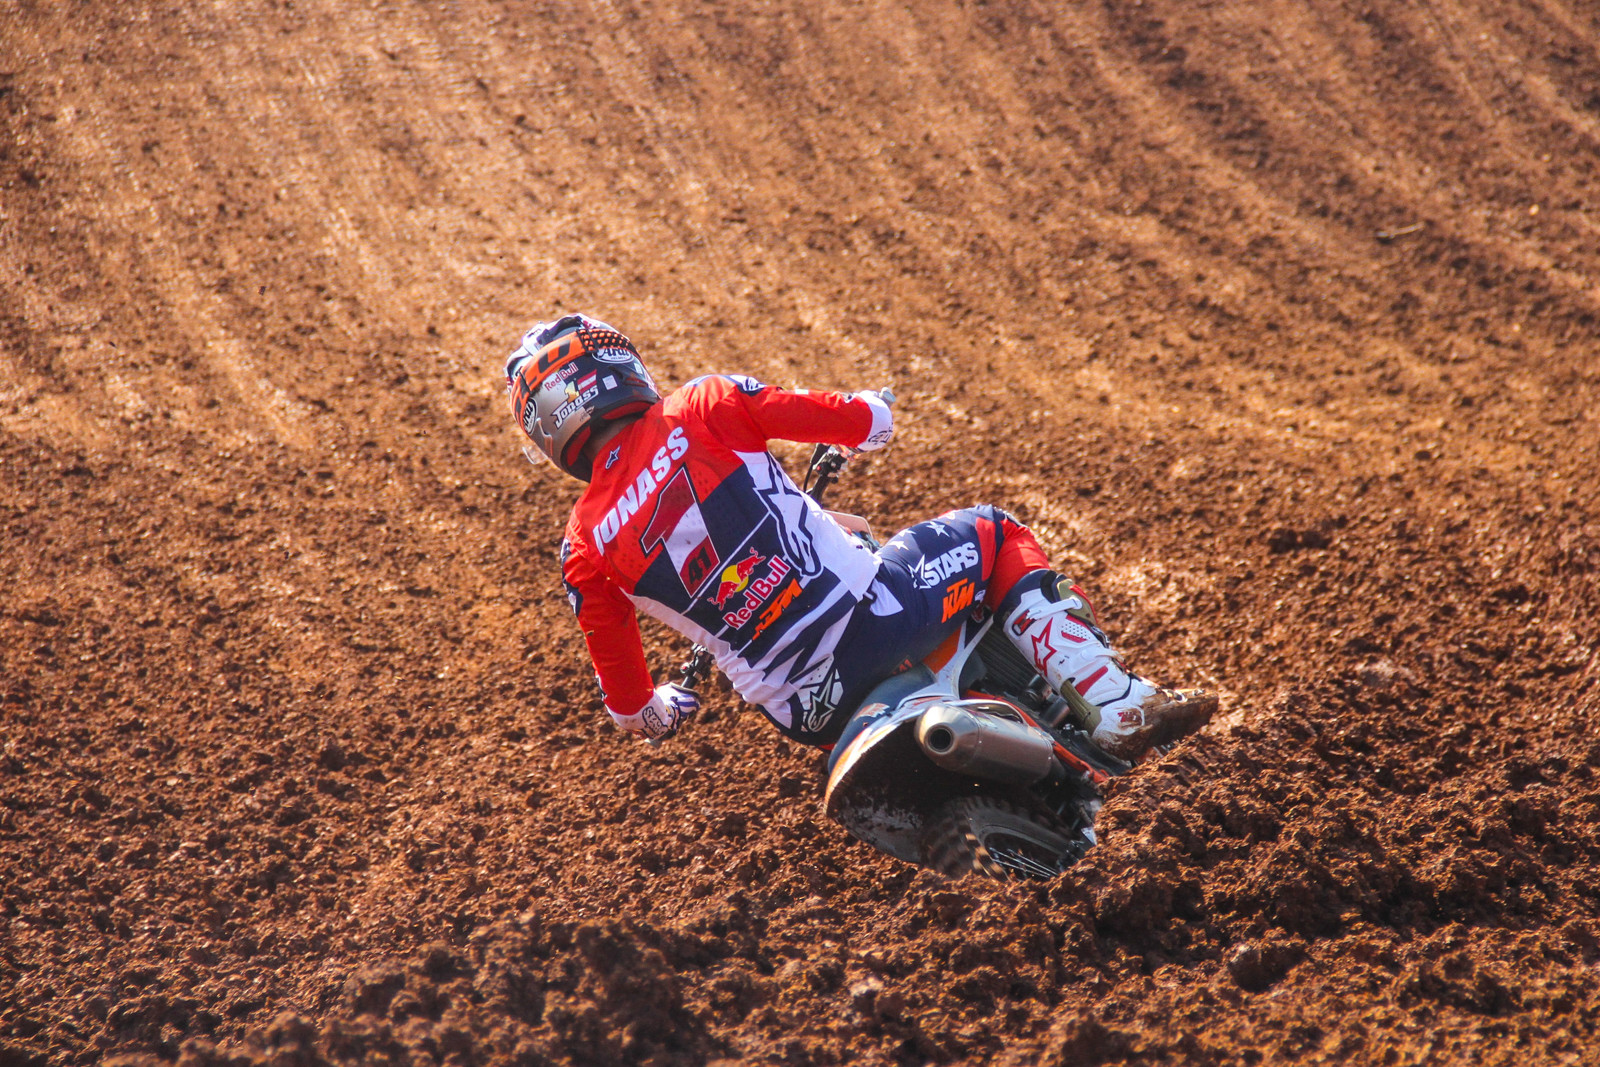 Pauls Jonass has lost his early season stranglehold on the season, as Jorge Prado has now tied him in points. At the start it looked like Pauls would defend with ease but now the number one plate looks to be weighing heavily.